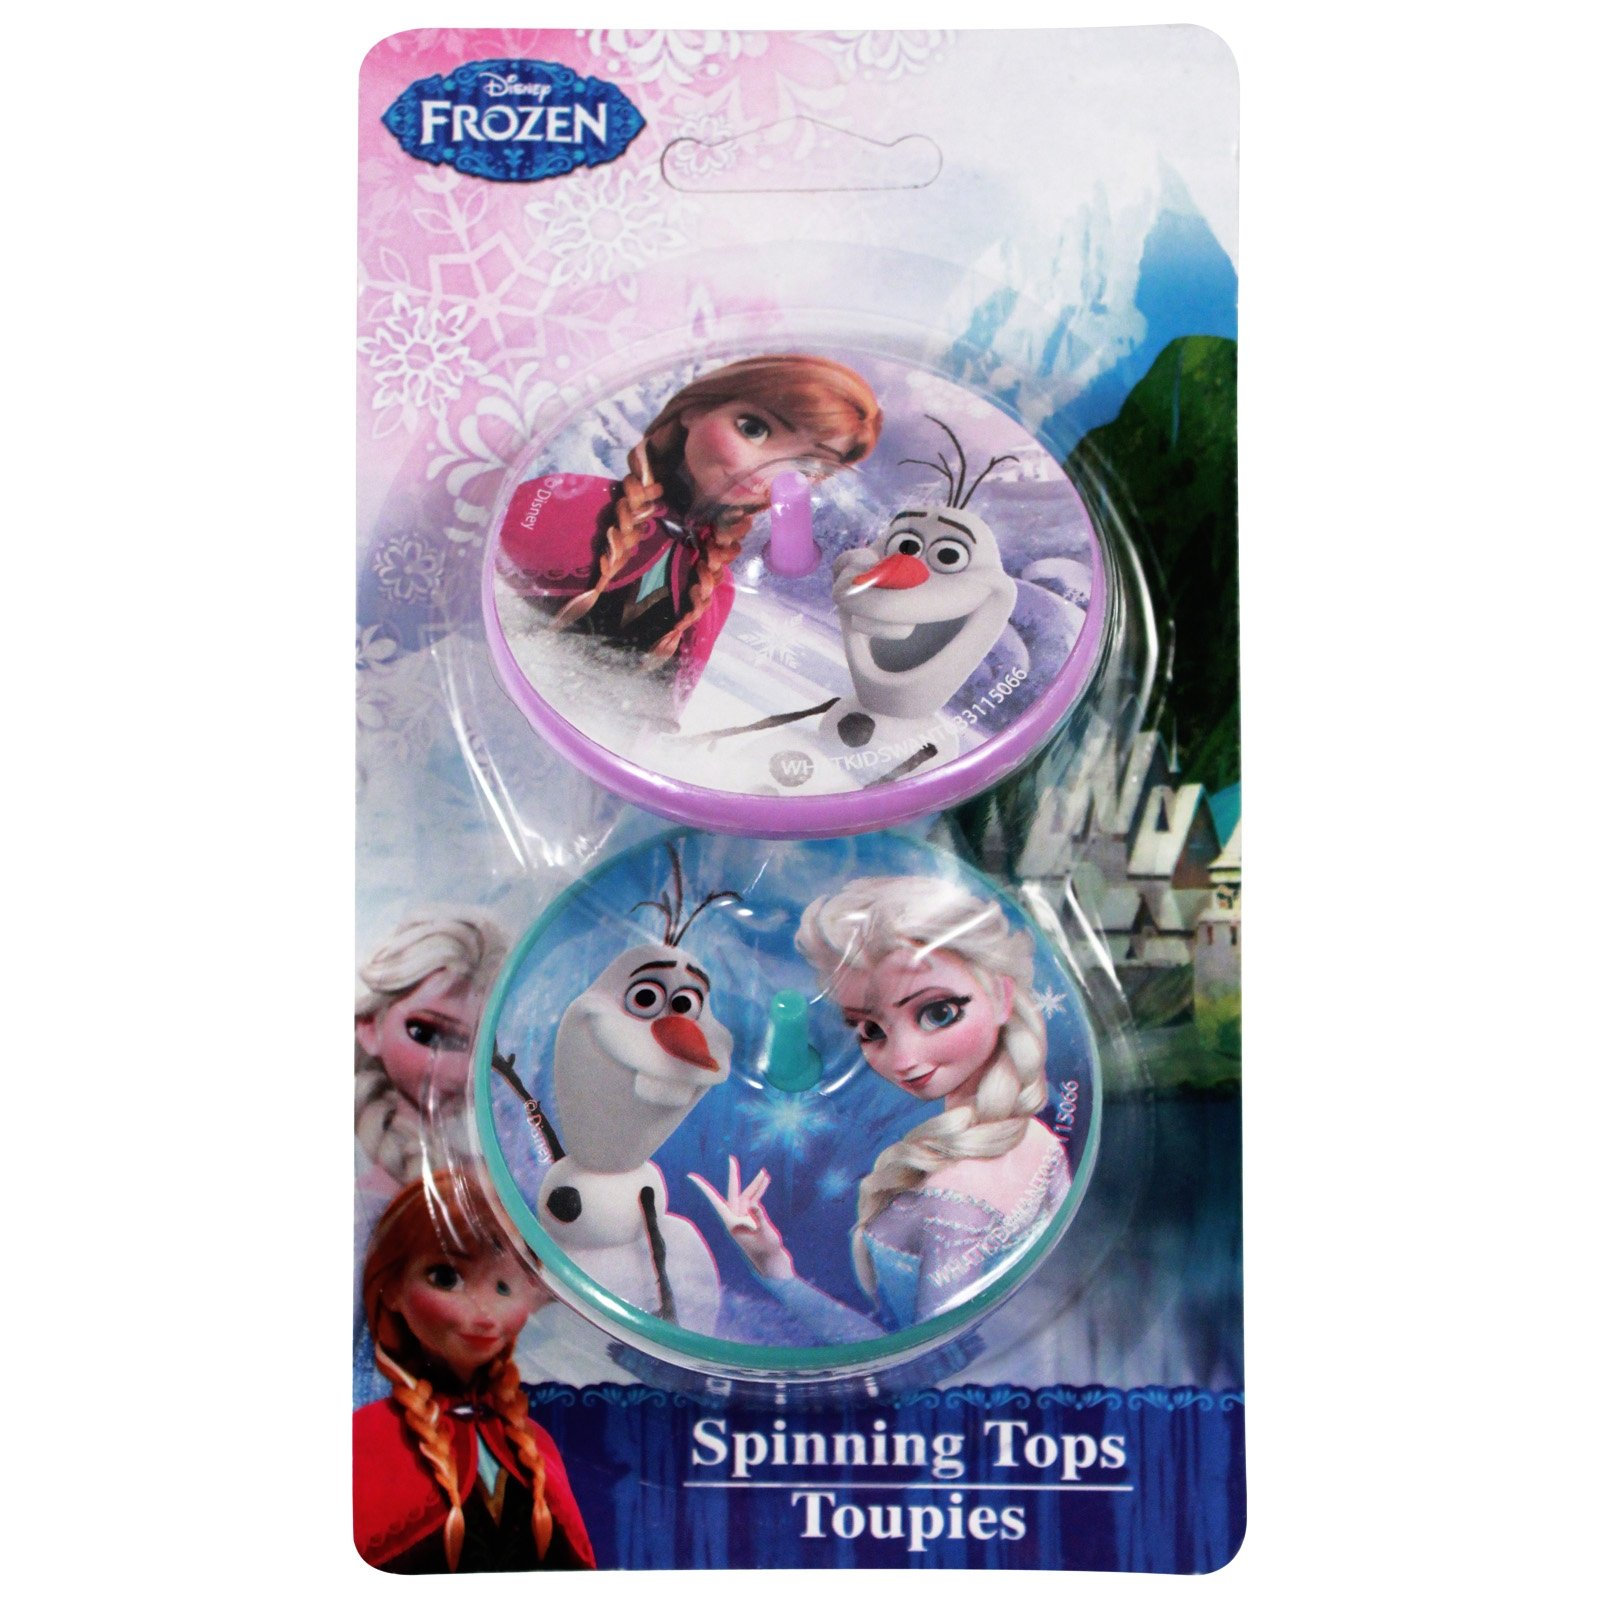 Disney Frozen Spinning Top Toy 2pk